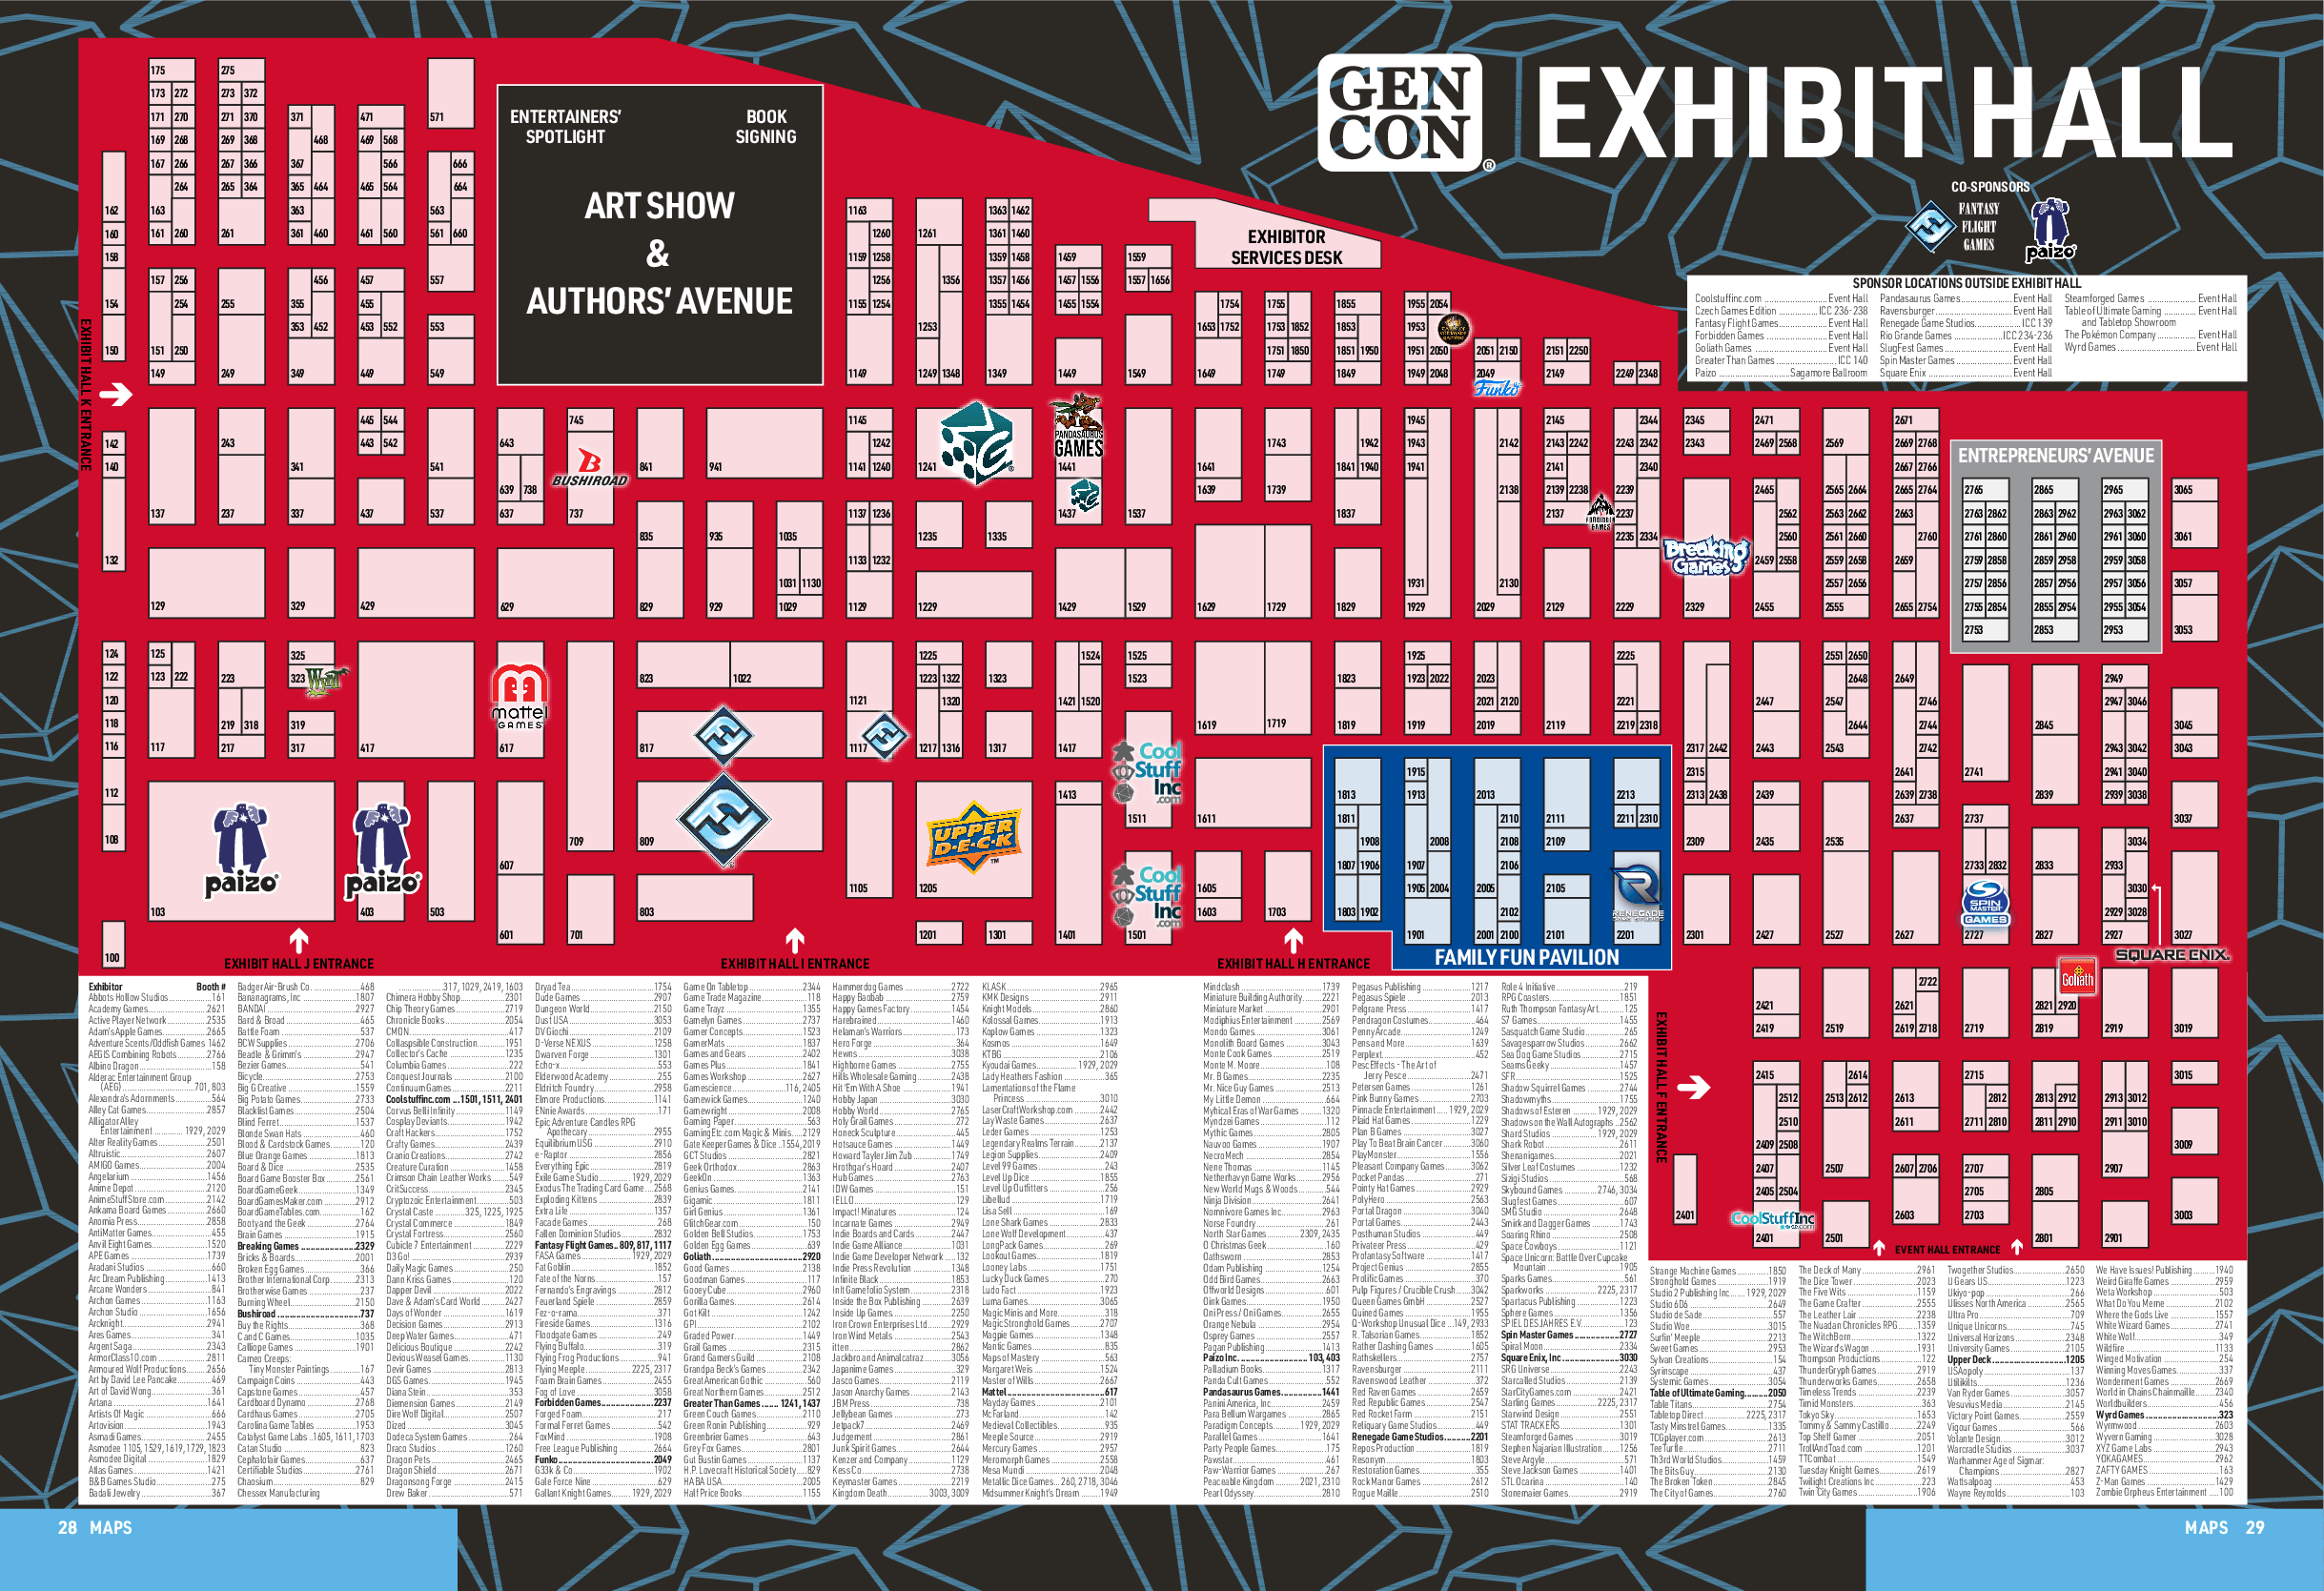 Gen Con 2019 Exhibit Hall Map Released | DDO Players